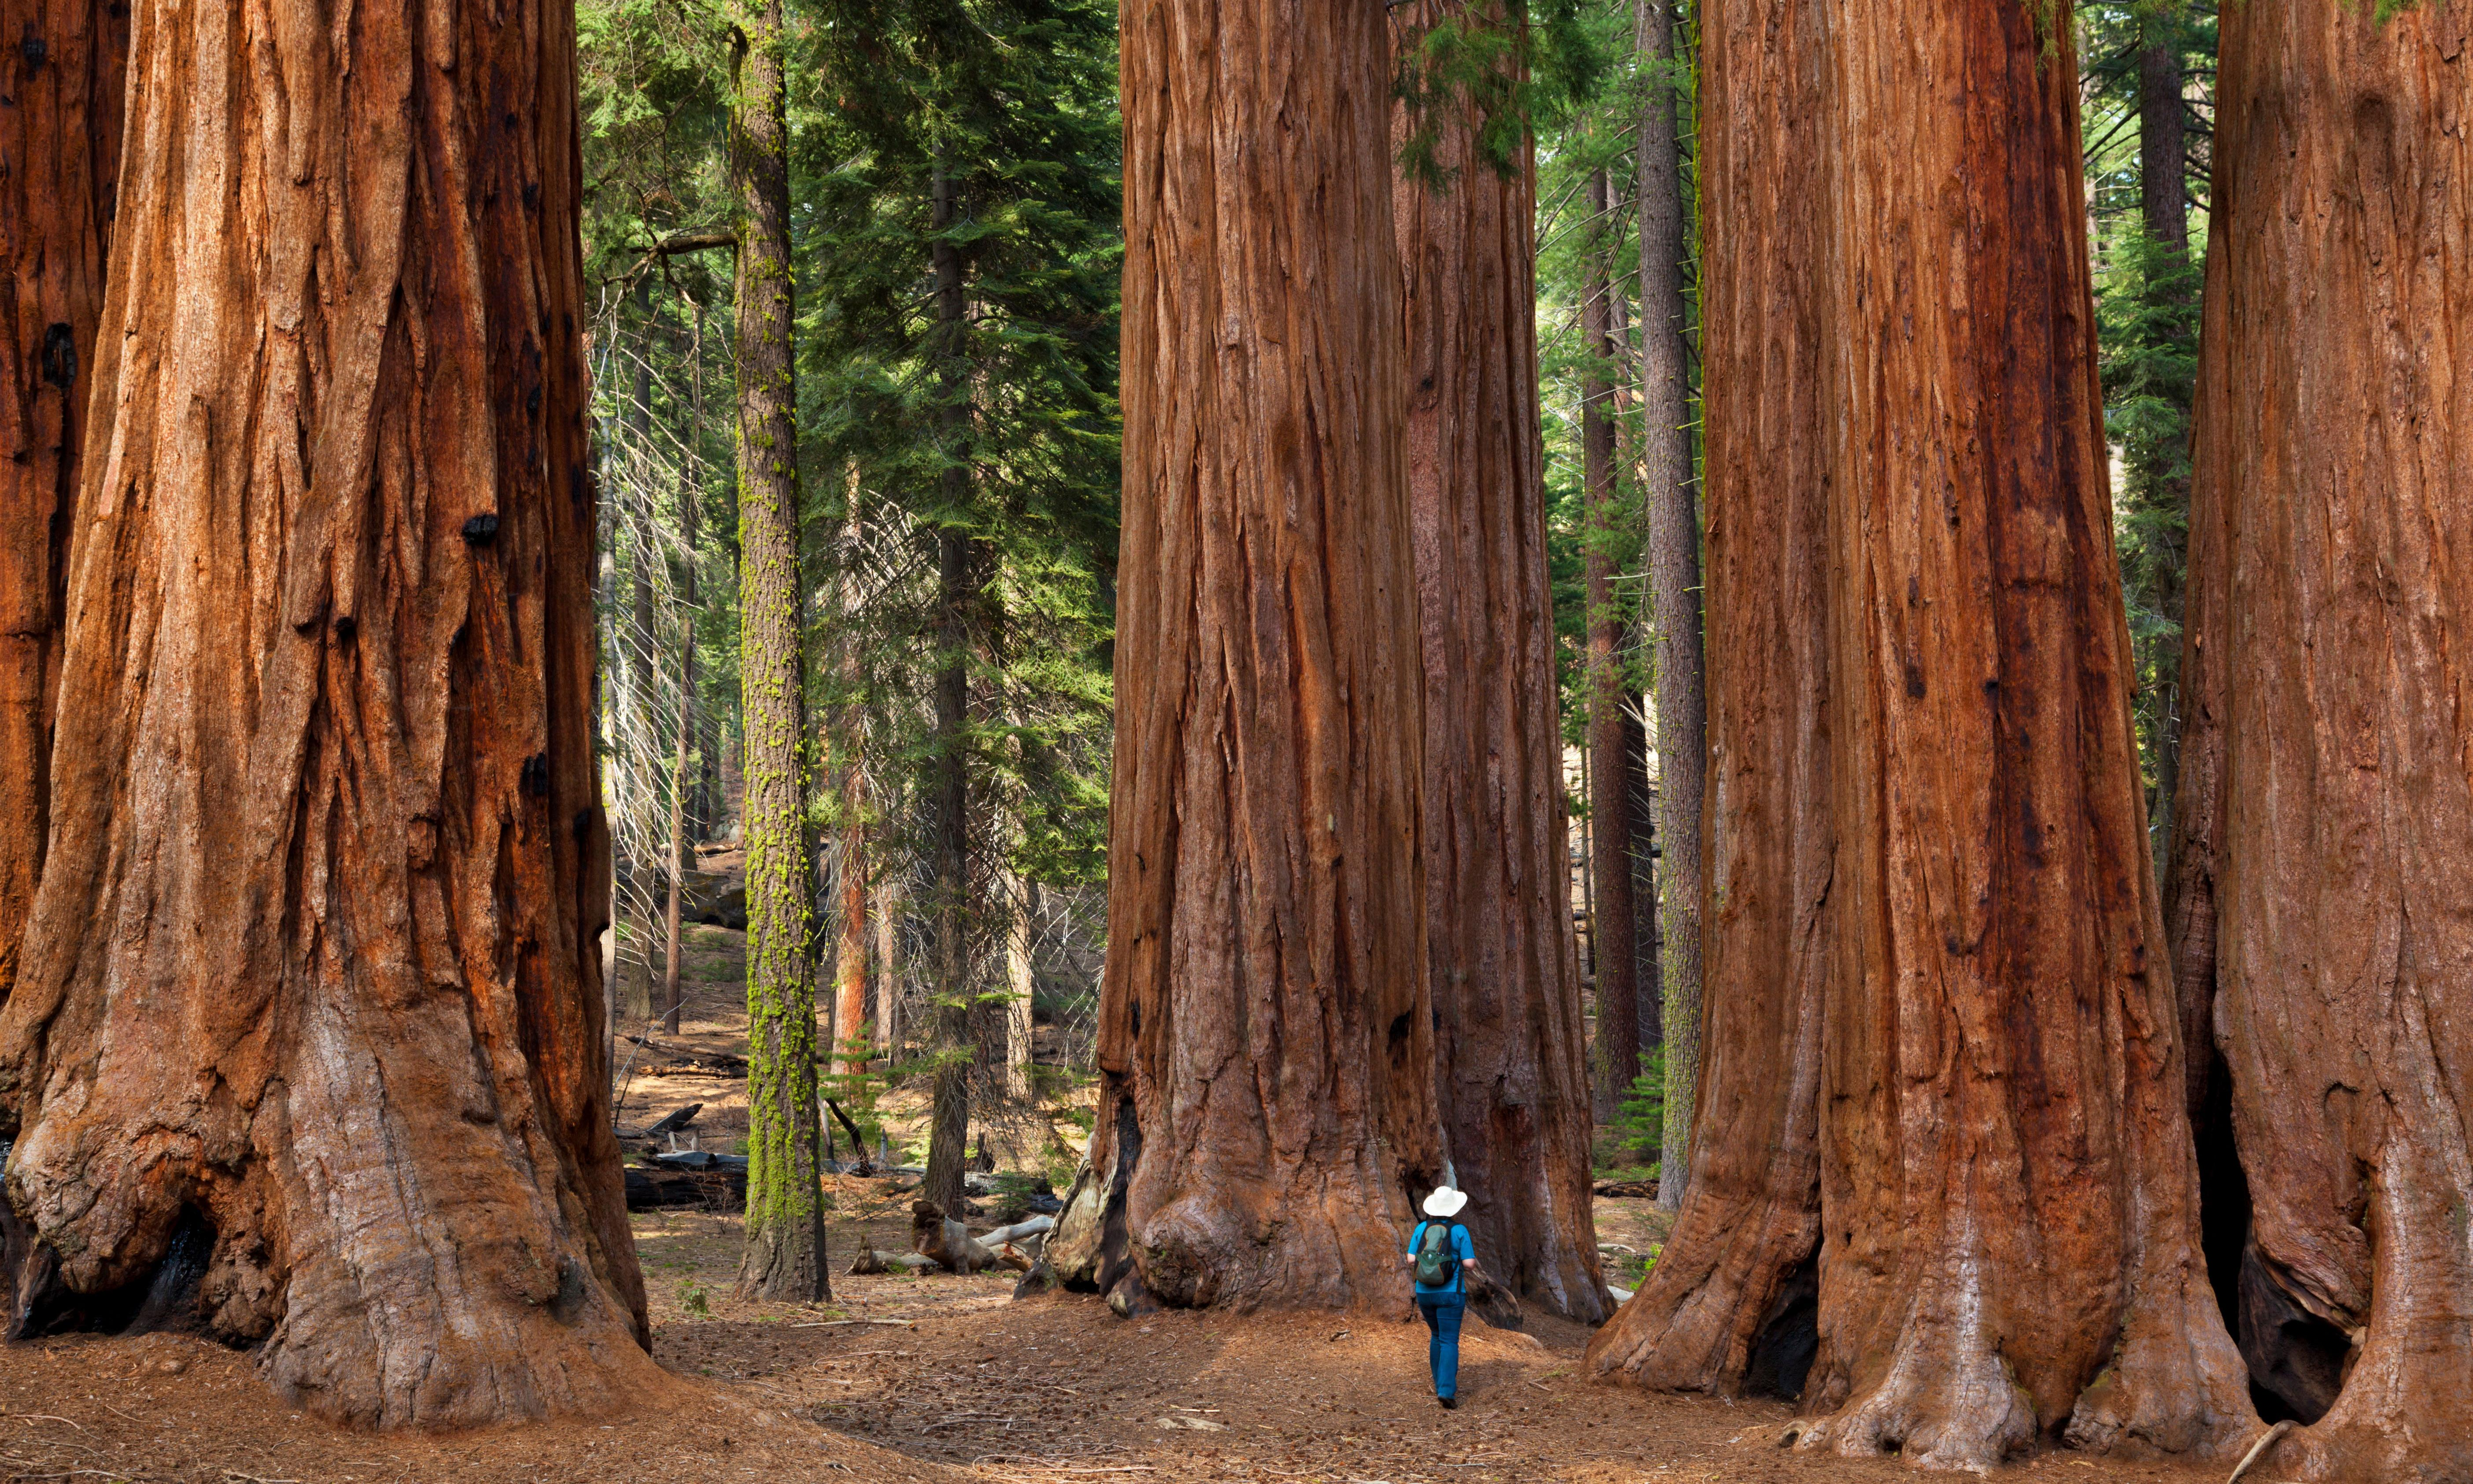 'Once they're gone, they're gone': the fight to save the giant sequoia